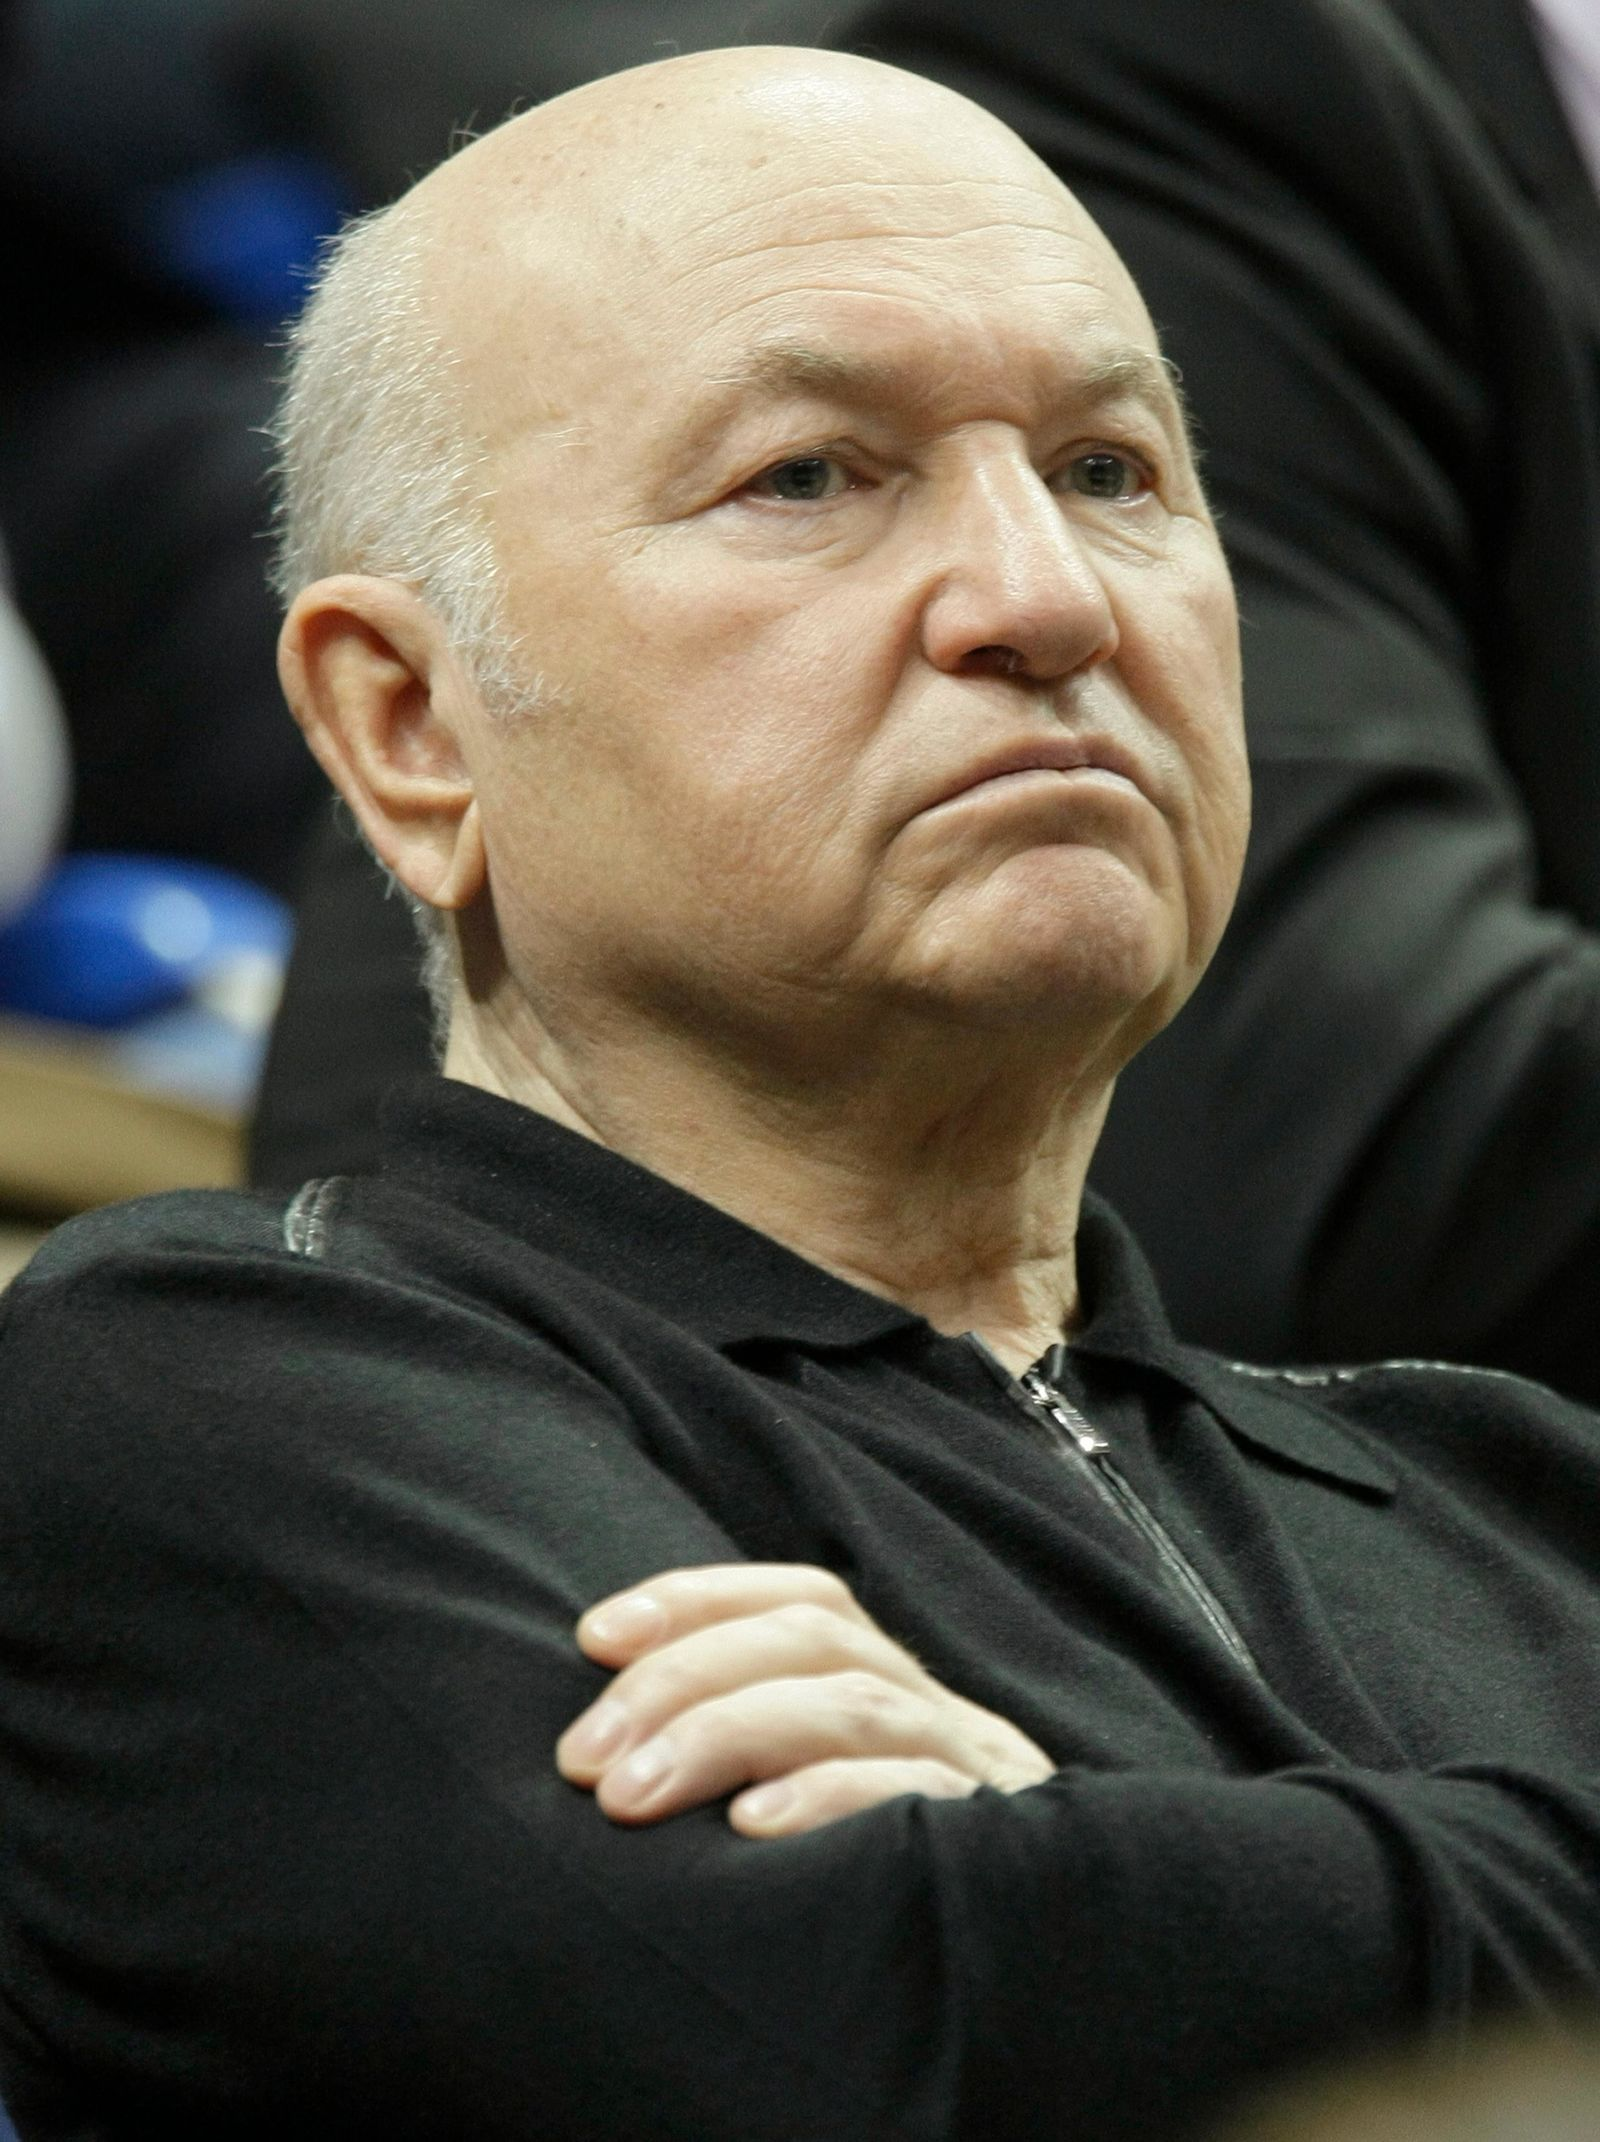 FILE - In this Sunday, April 17, 2011 file photo, former Moscow Mayor Yuri Luzhkov attends a Fed Cup World Group semifinal tennis match between Russia and Italy in Moscow, Russia. (AP Photo/Misha Japaridze, File)